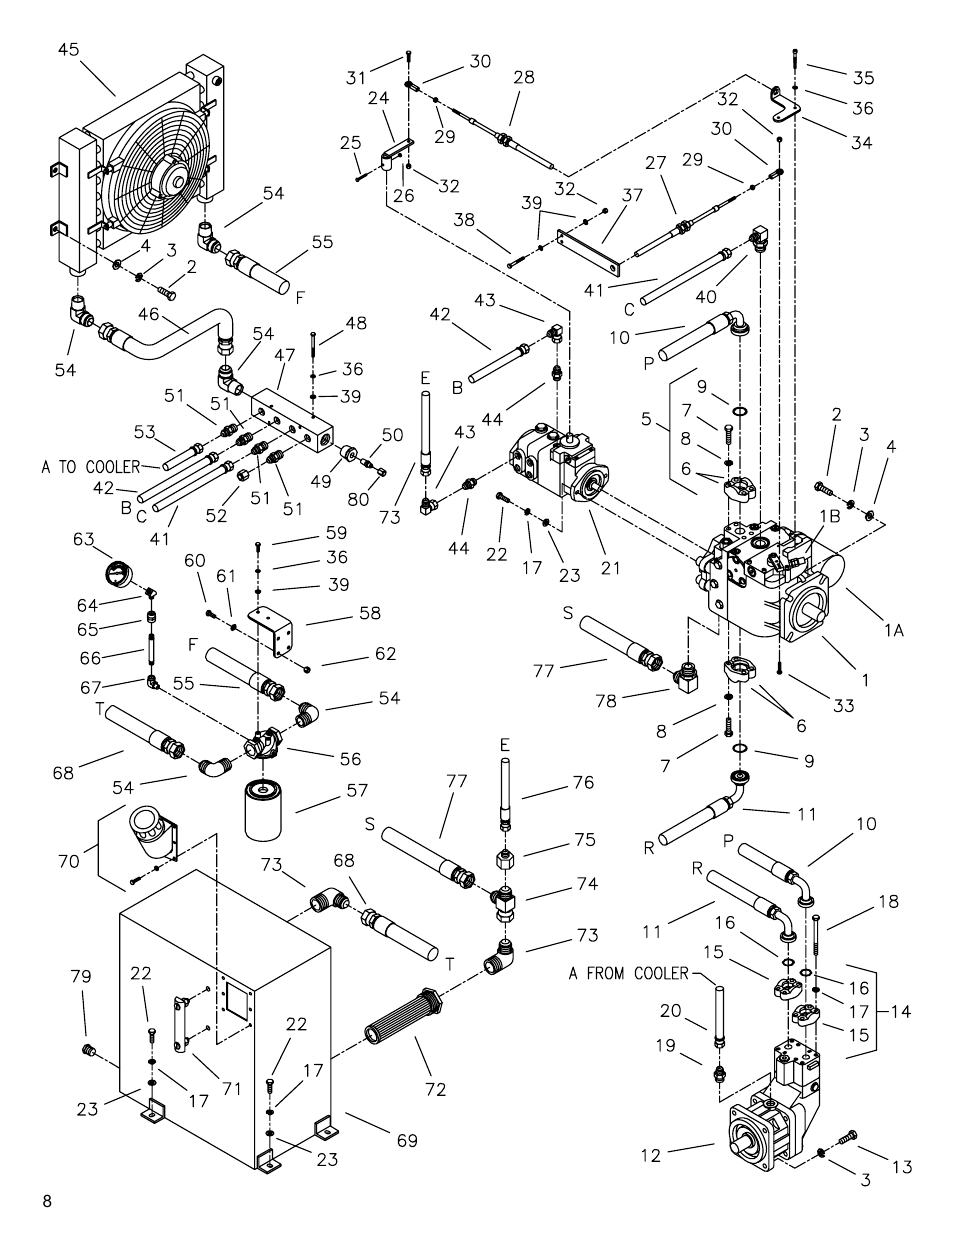 Hydraulics group a, Drawing 3. hydraulics group a